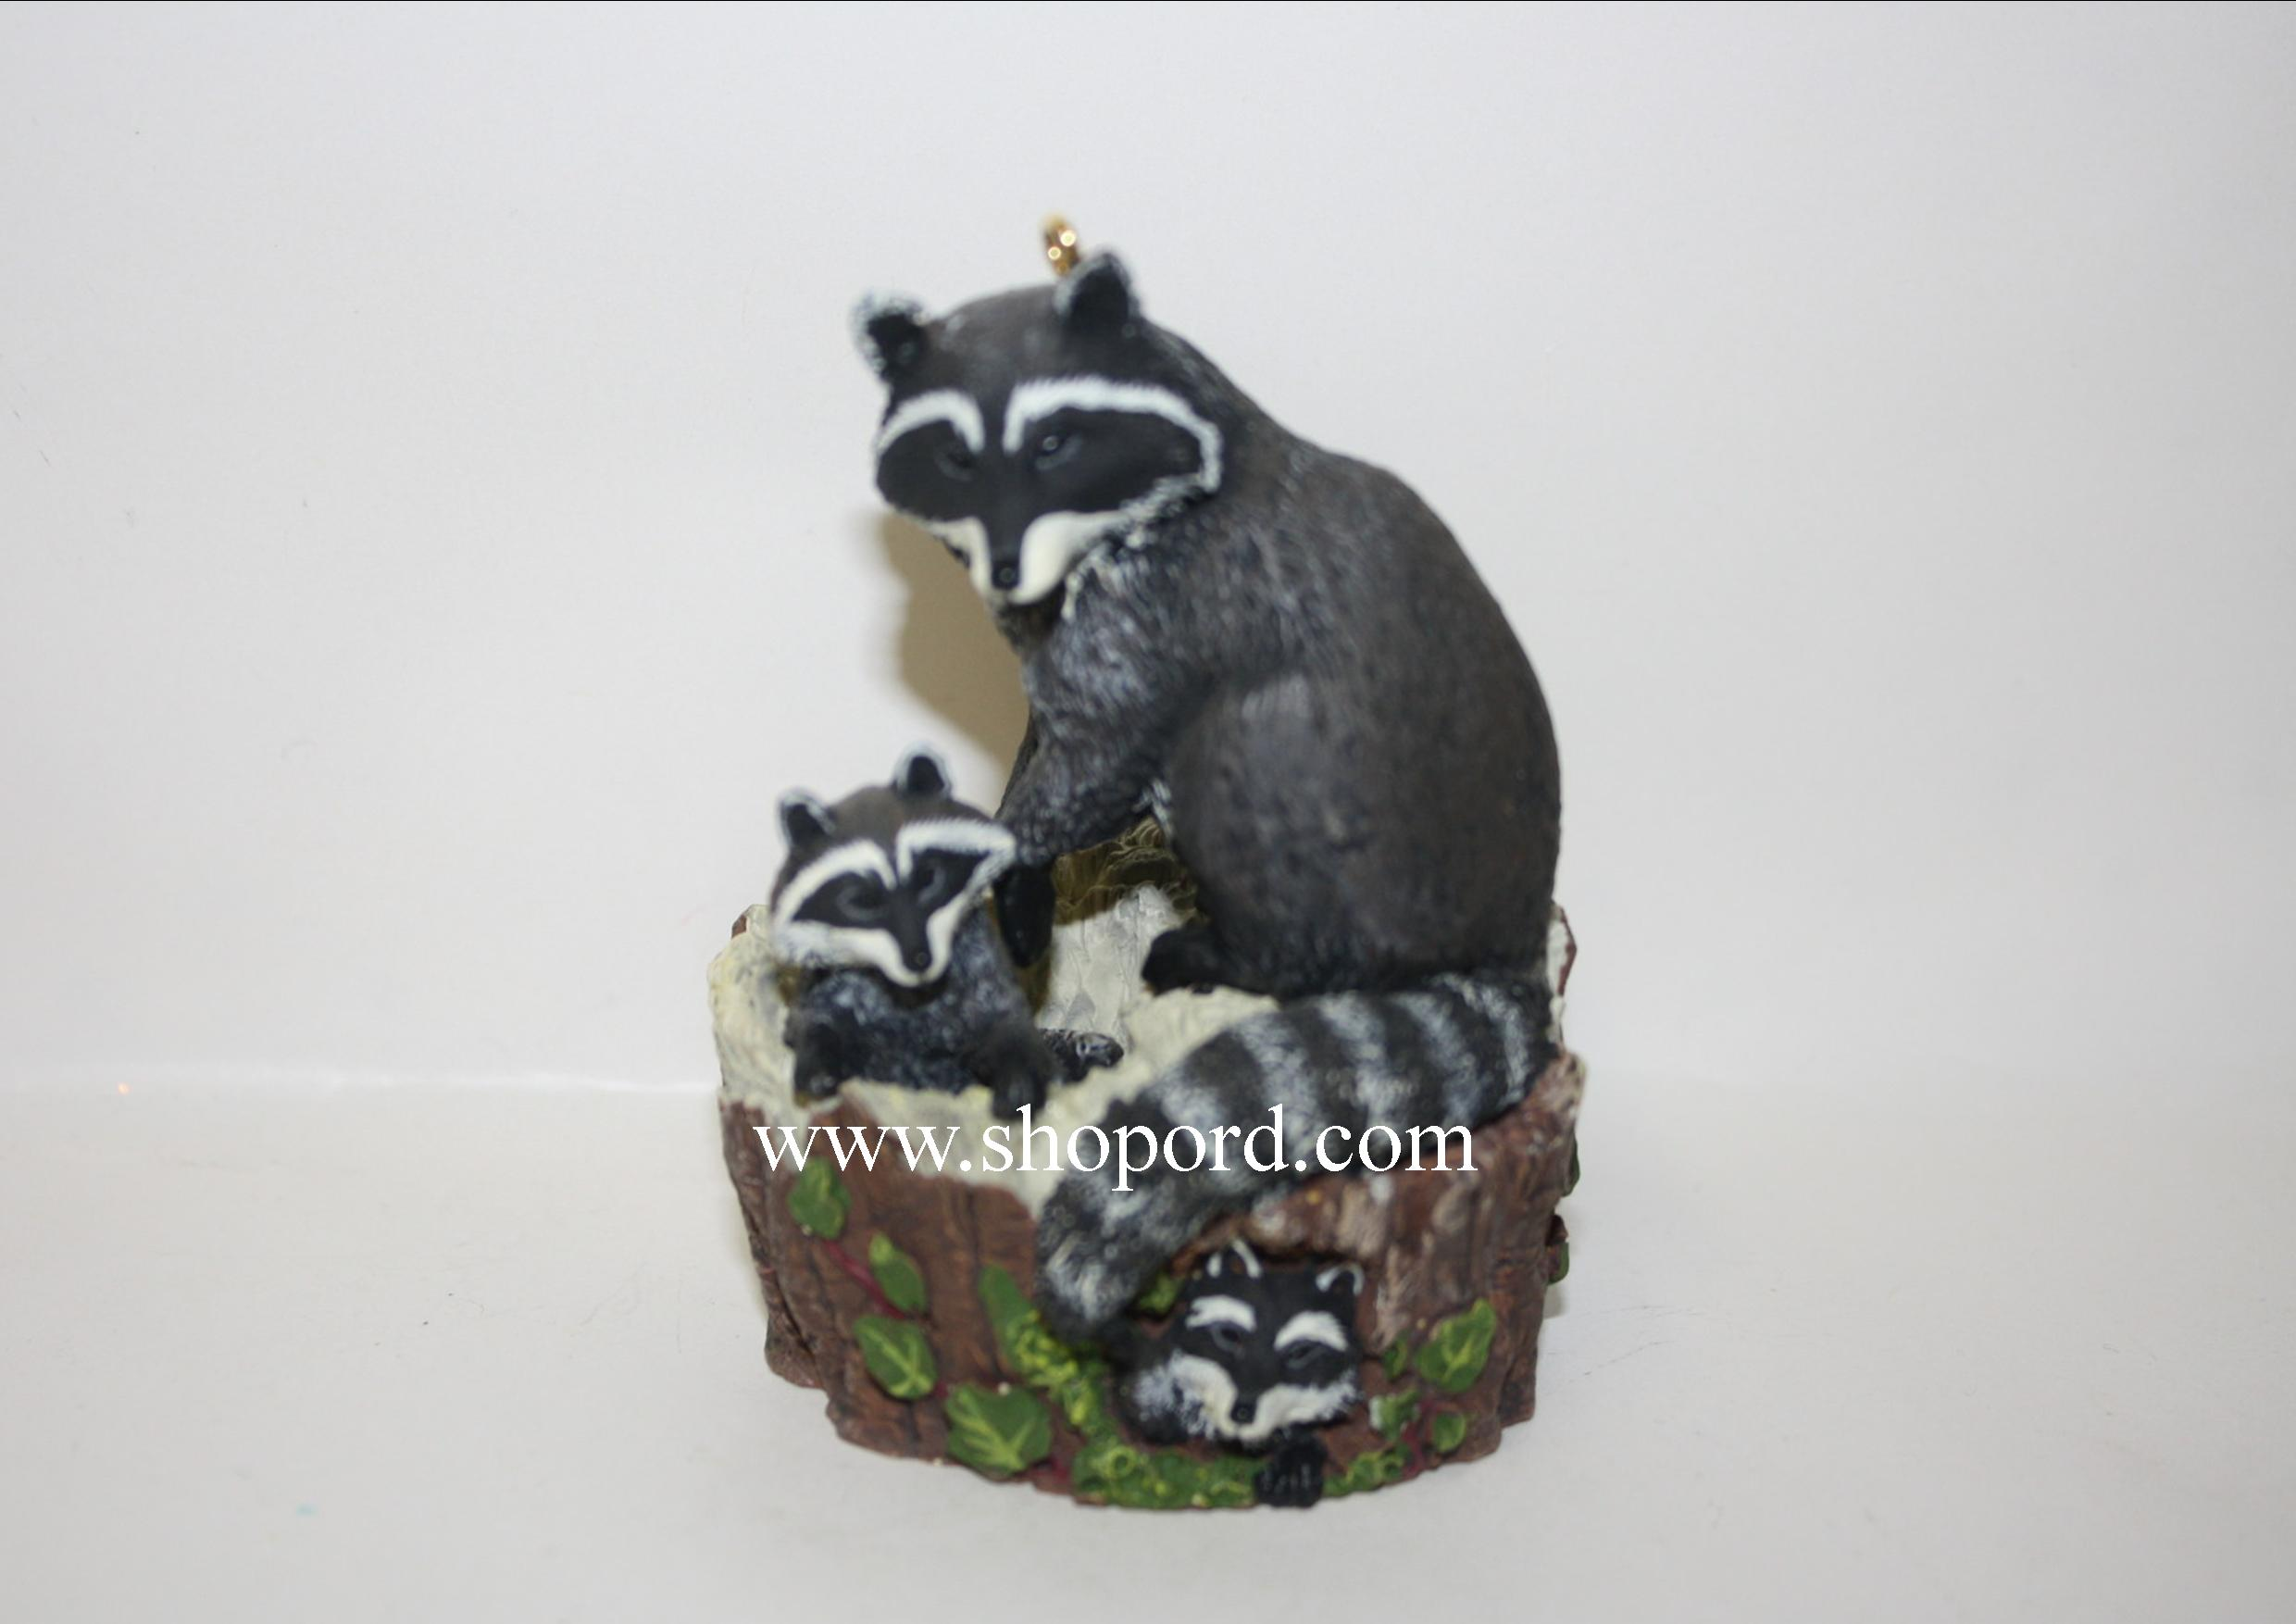 Hallmark 1999 Curious Raccoons Ornament 3rd In The Majestic Wilderness Series QX6287